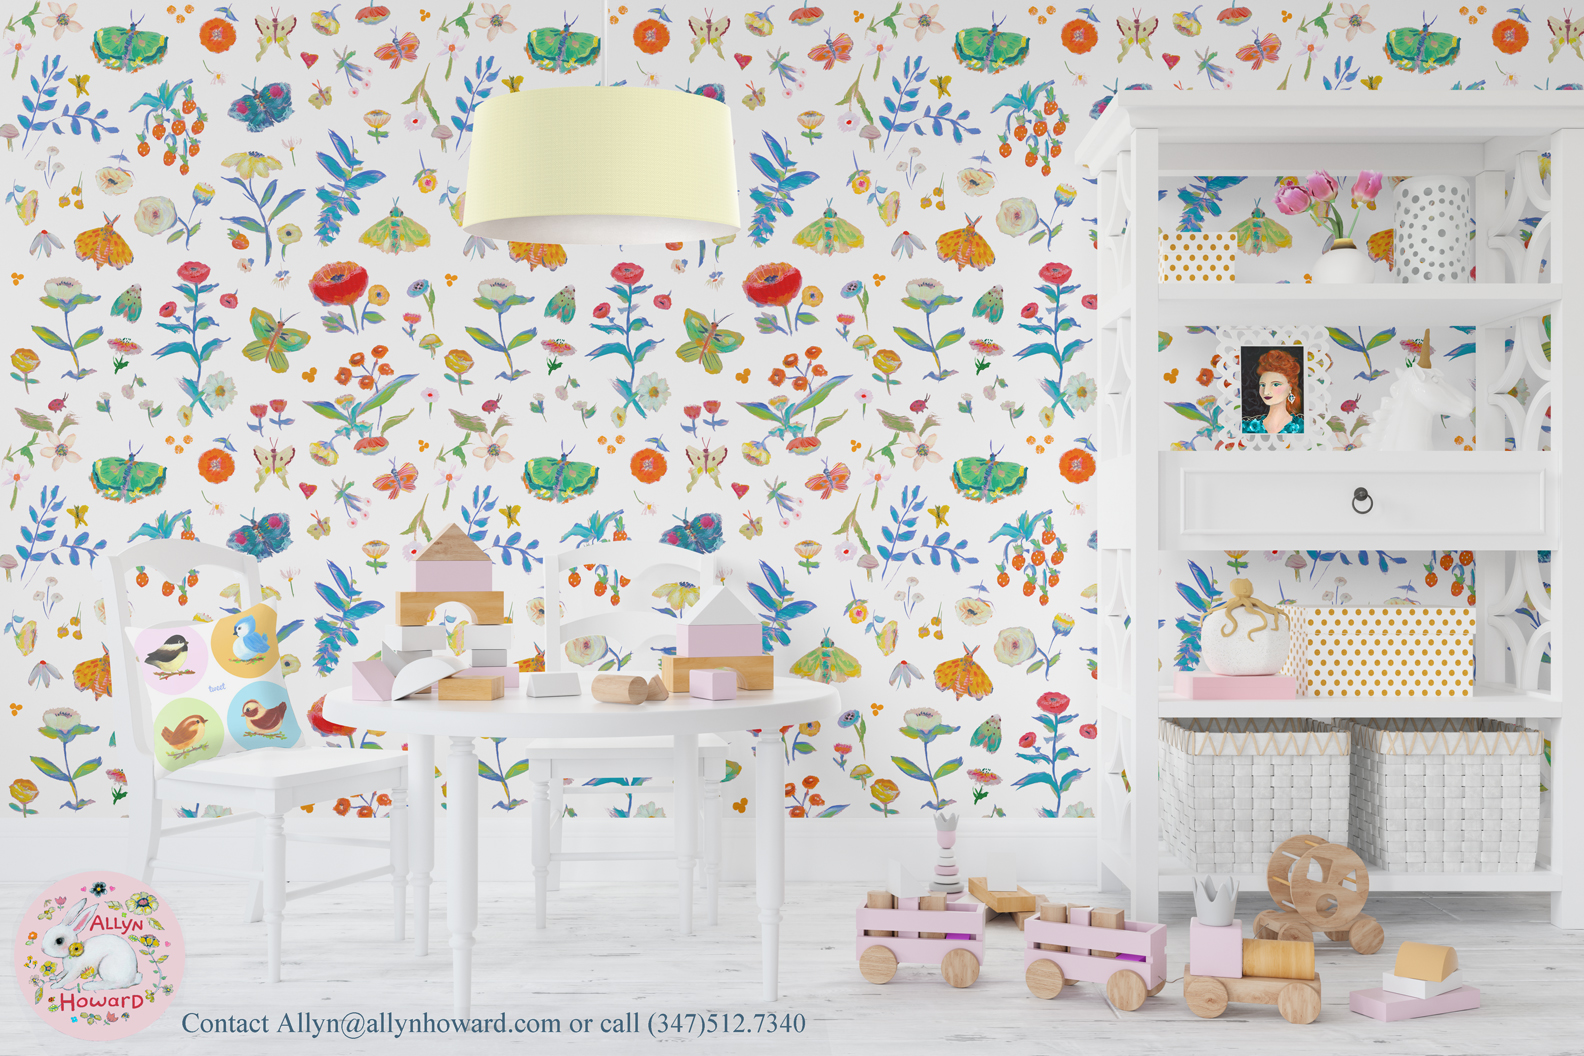 Allyn_Howard_butterflies-blooms-wallpaper_mock-up.jpg